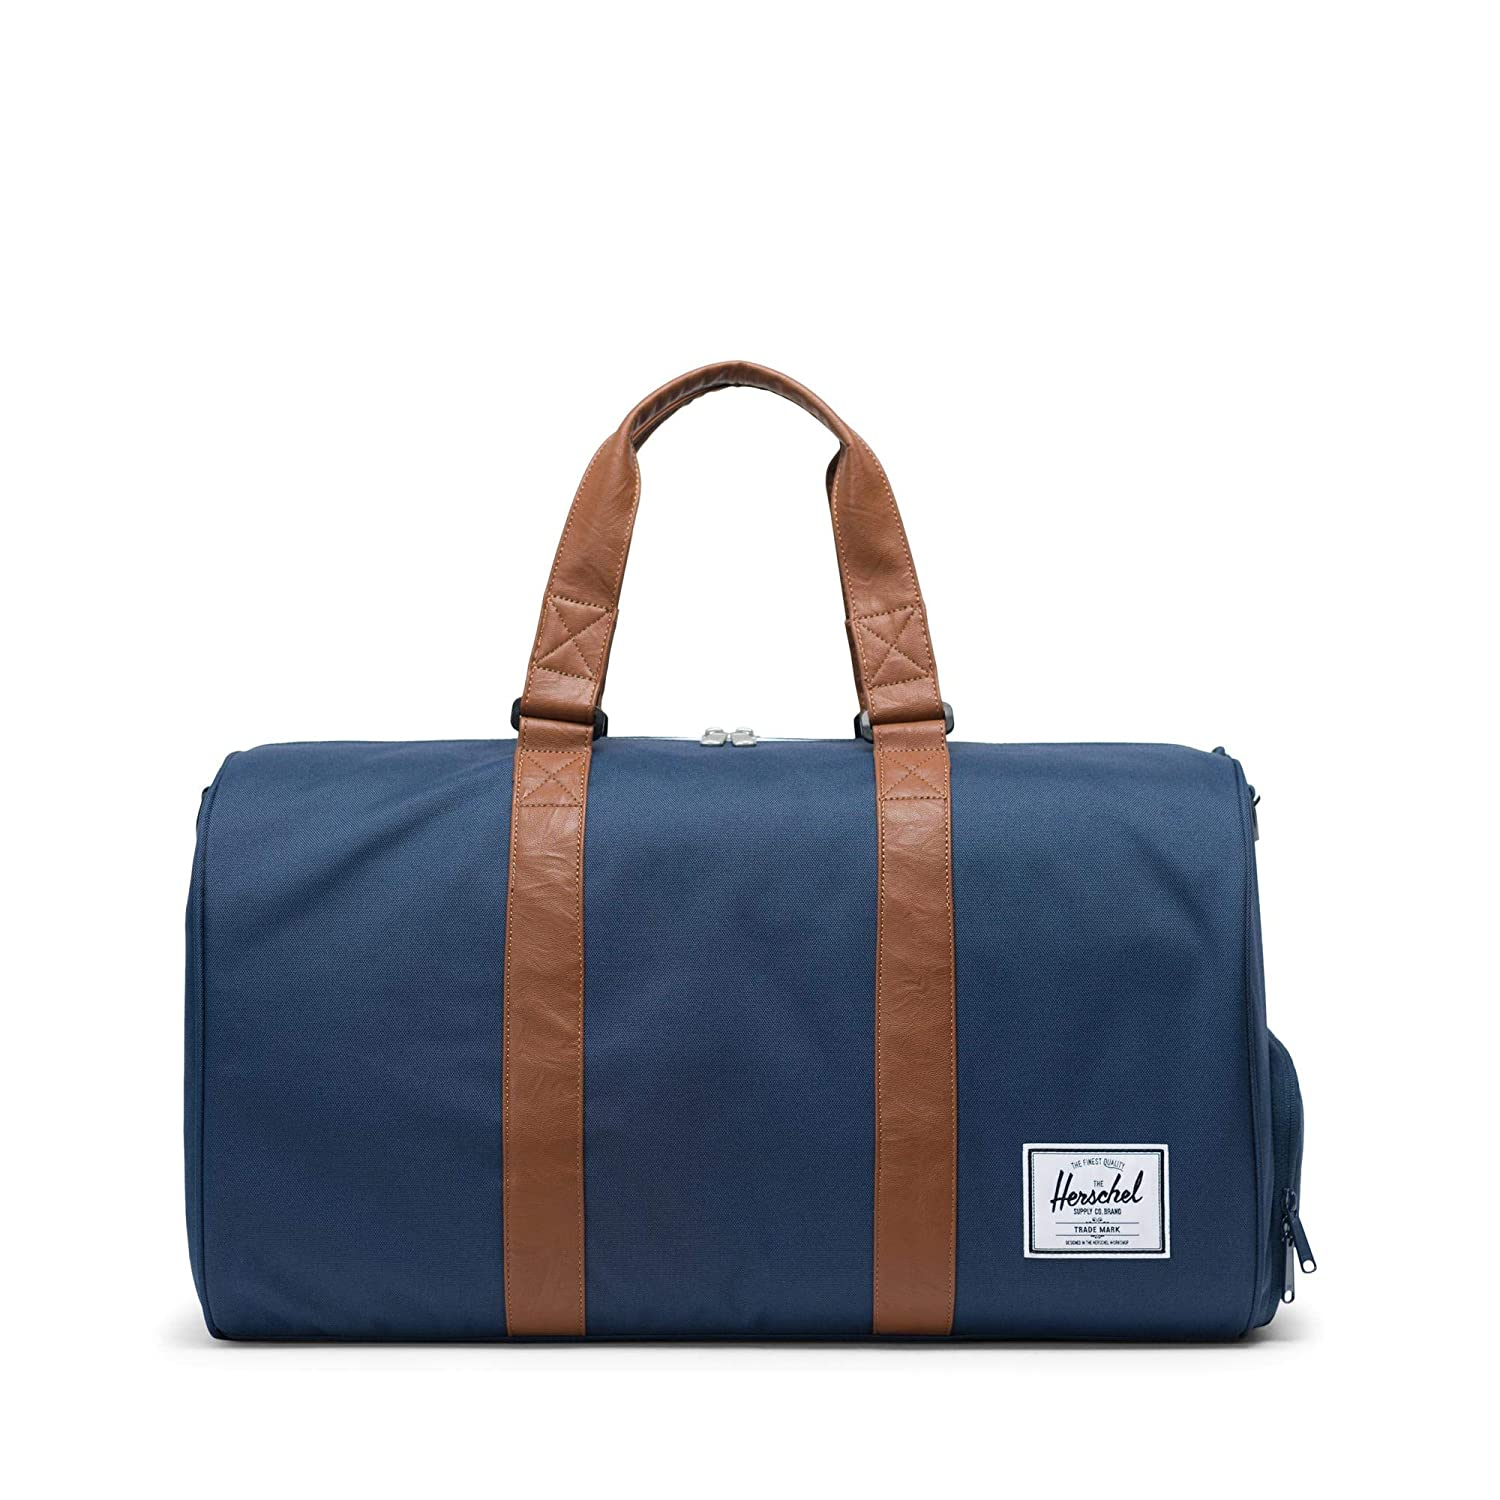 7cb1c08ad Amazon.com | Herschel Novel Duffle Bag, Navy, One Size | Travel Duffels